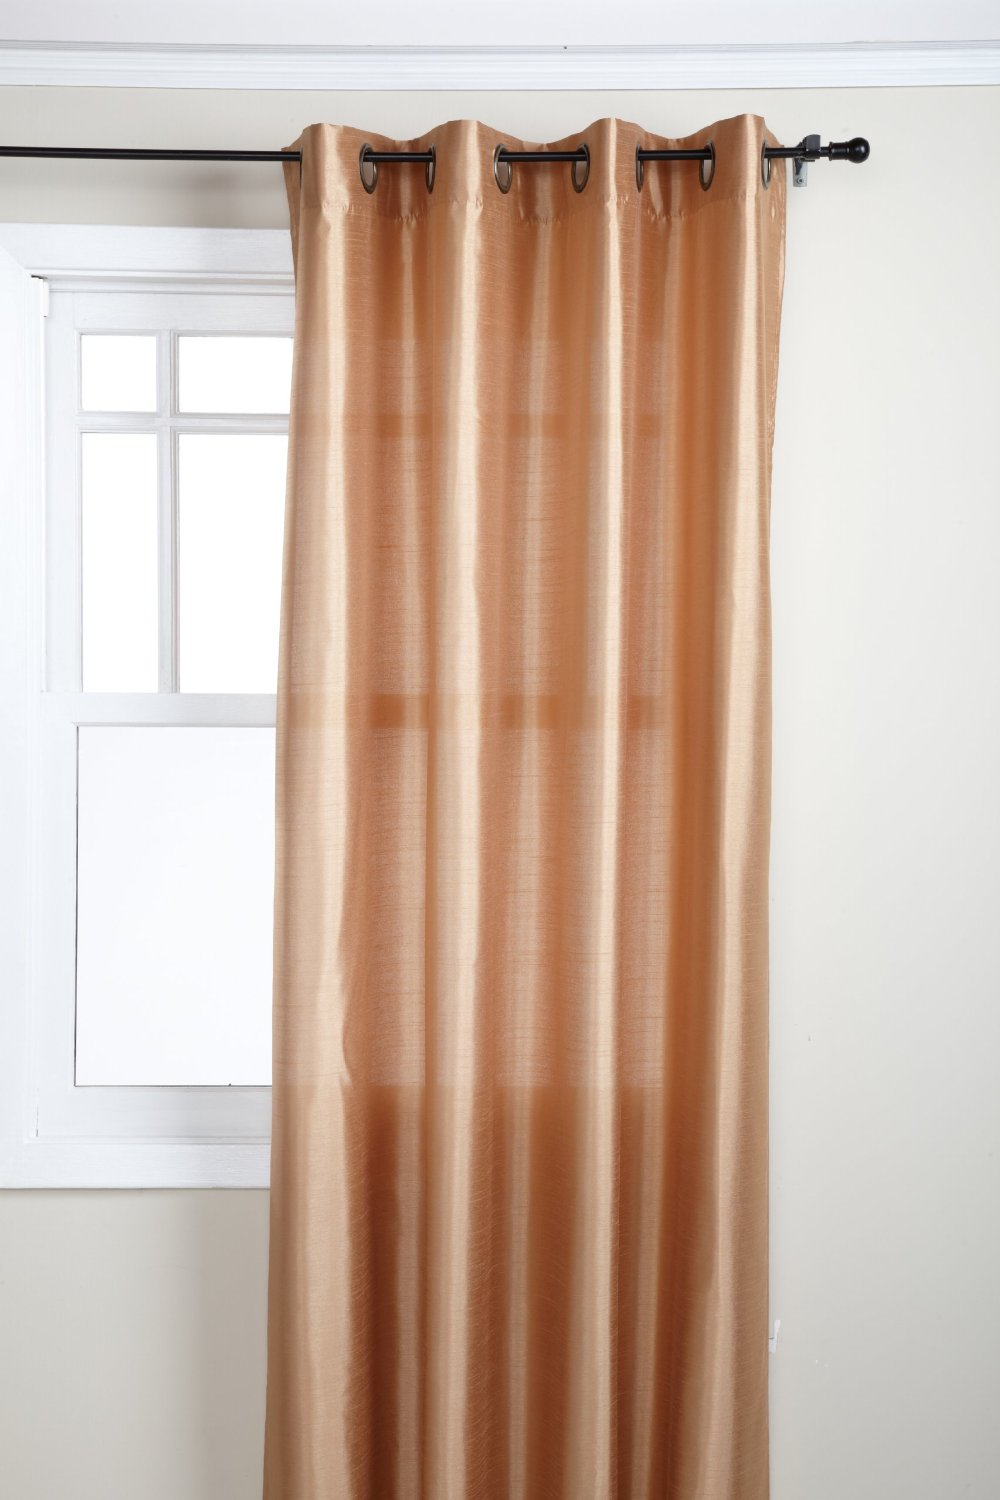 Amazon.com - Stylemaster Tribeca 56 by 84-Inch Faux Silk Grommet Panel, Truffle - Window Treatment Panels